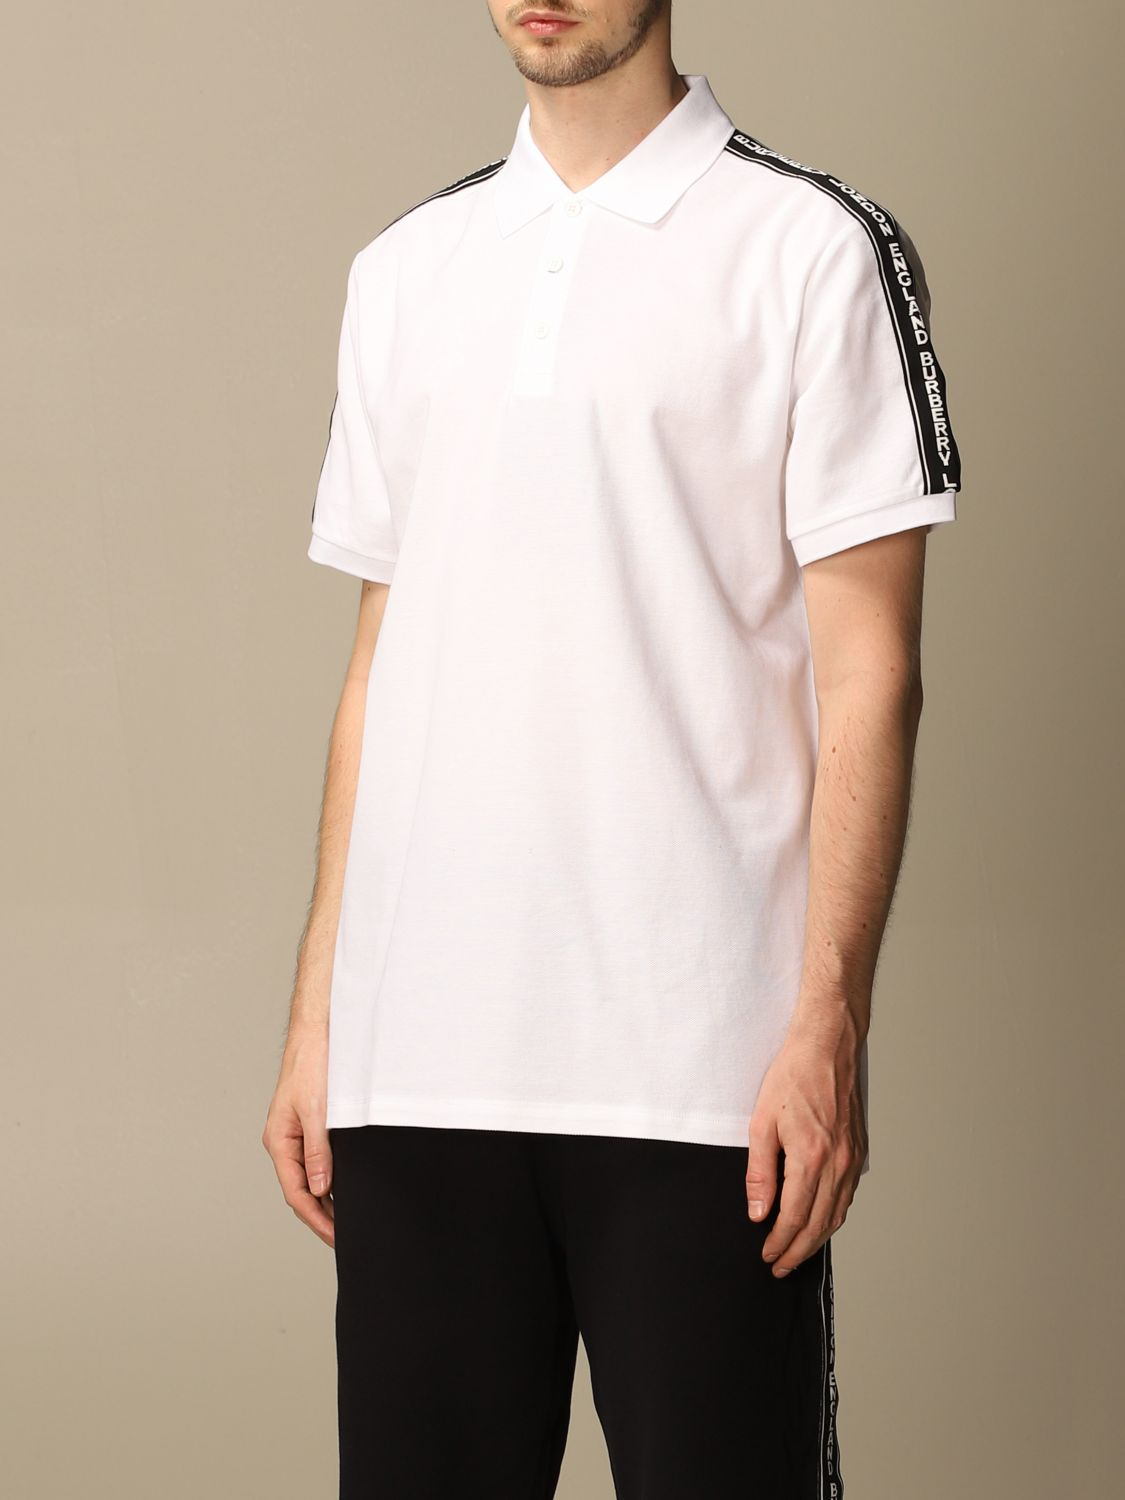 Polo shirt Burberry: Stonely Burberry polo shirt in piqué cotton with logoed bands white 4